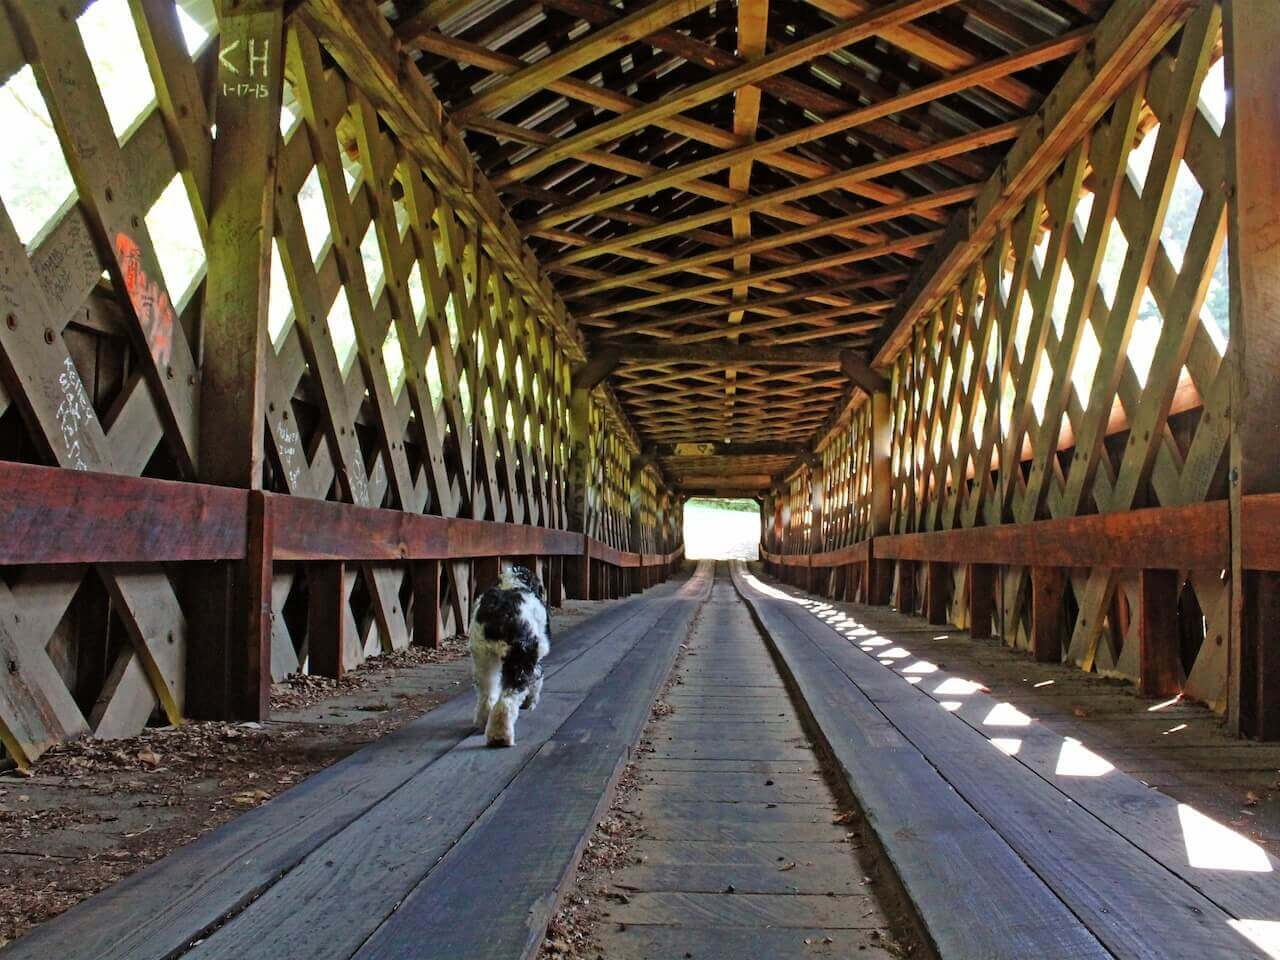 A furry friend explores the bridge.